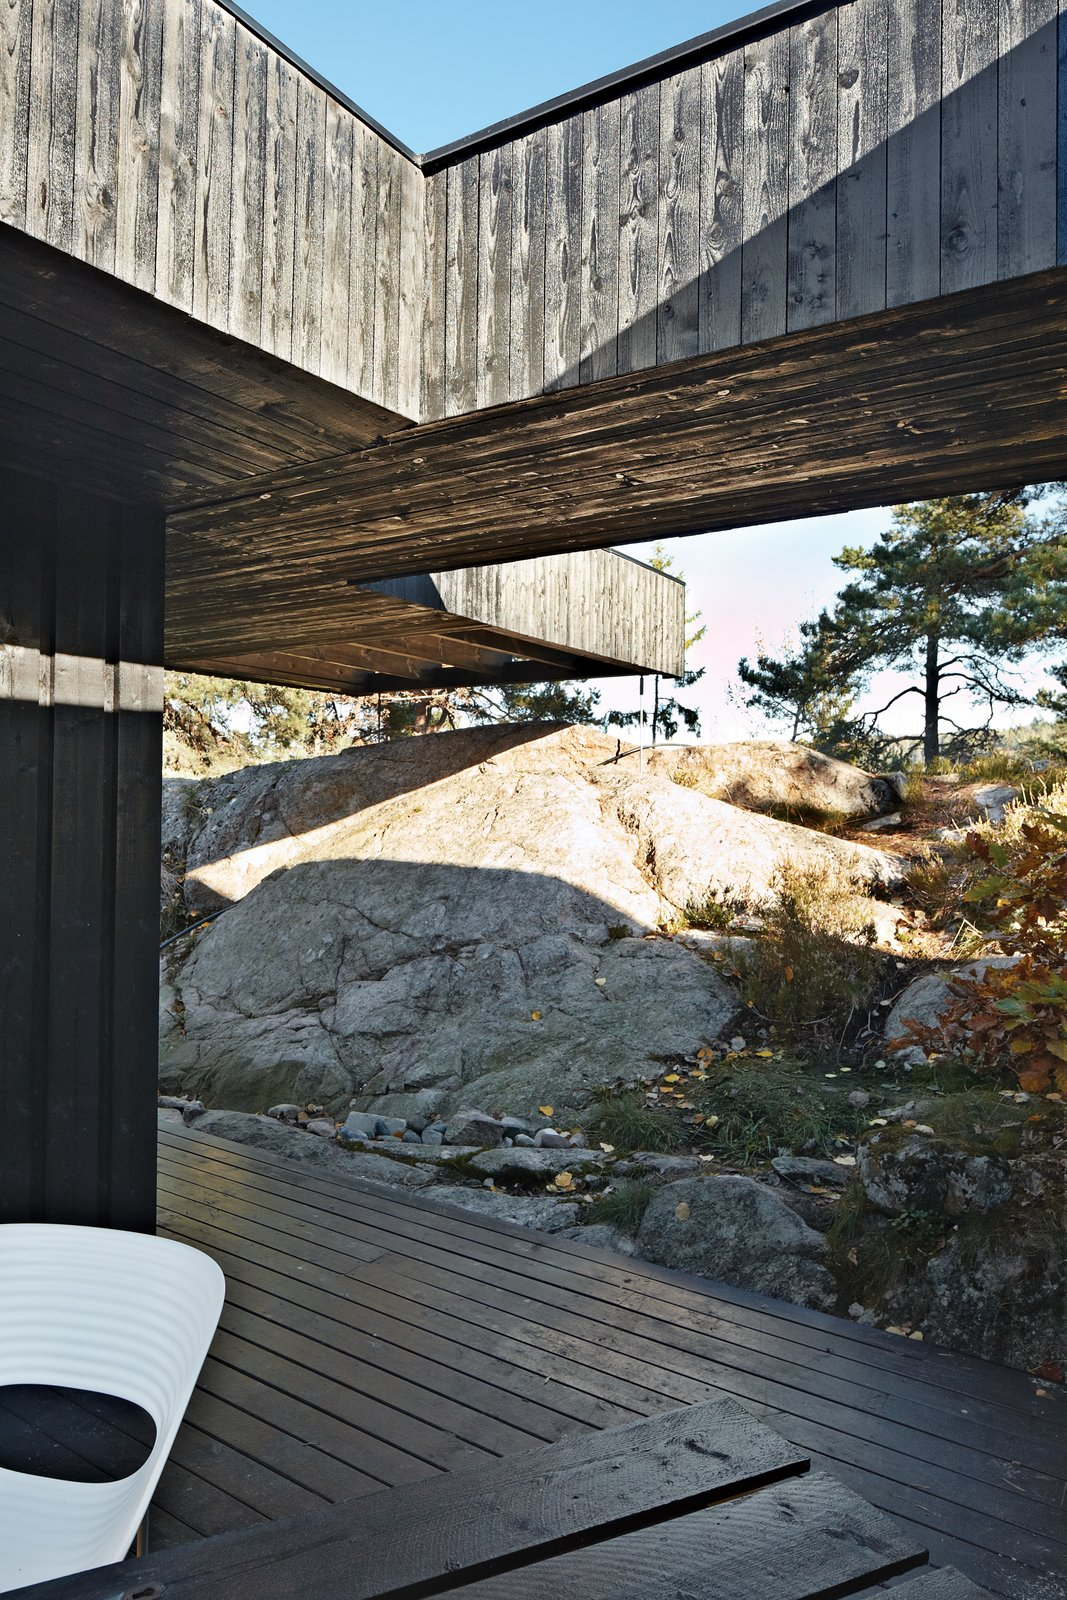 Outdoor, Boulders, Large Patio, Porch, Deck, Wood Patio, Porch, Deck, and Trees A section of the roof reaches over a rock outcropping—a detail that visually connects the house to the landscape and offers a handy way to climb up to the roof deck without using a ladder.  Cabin